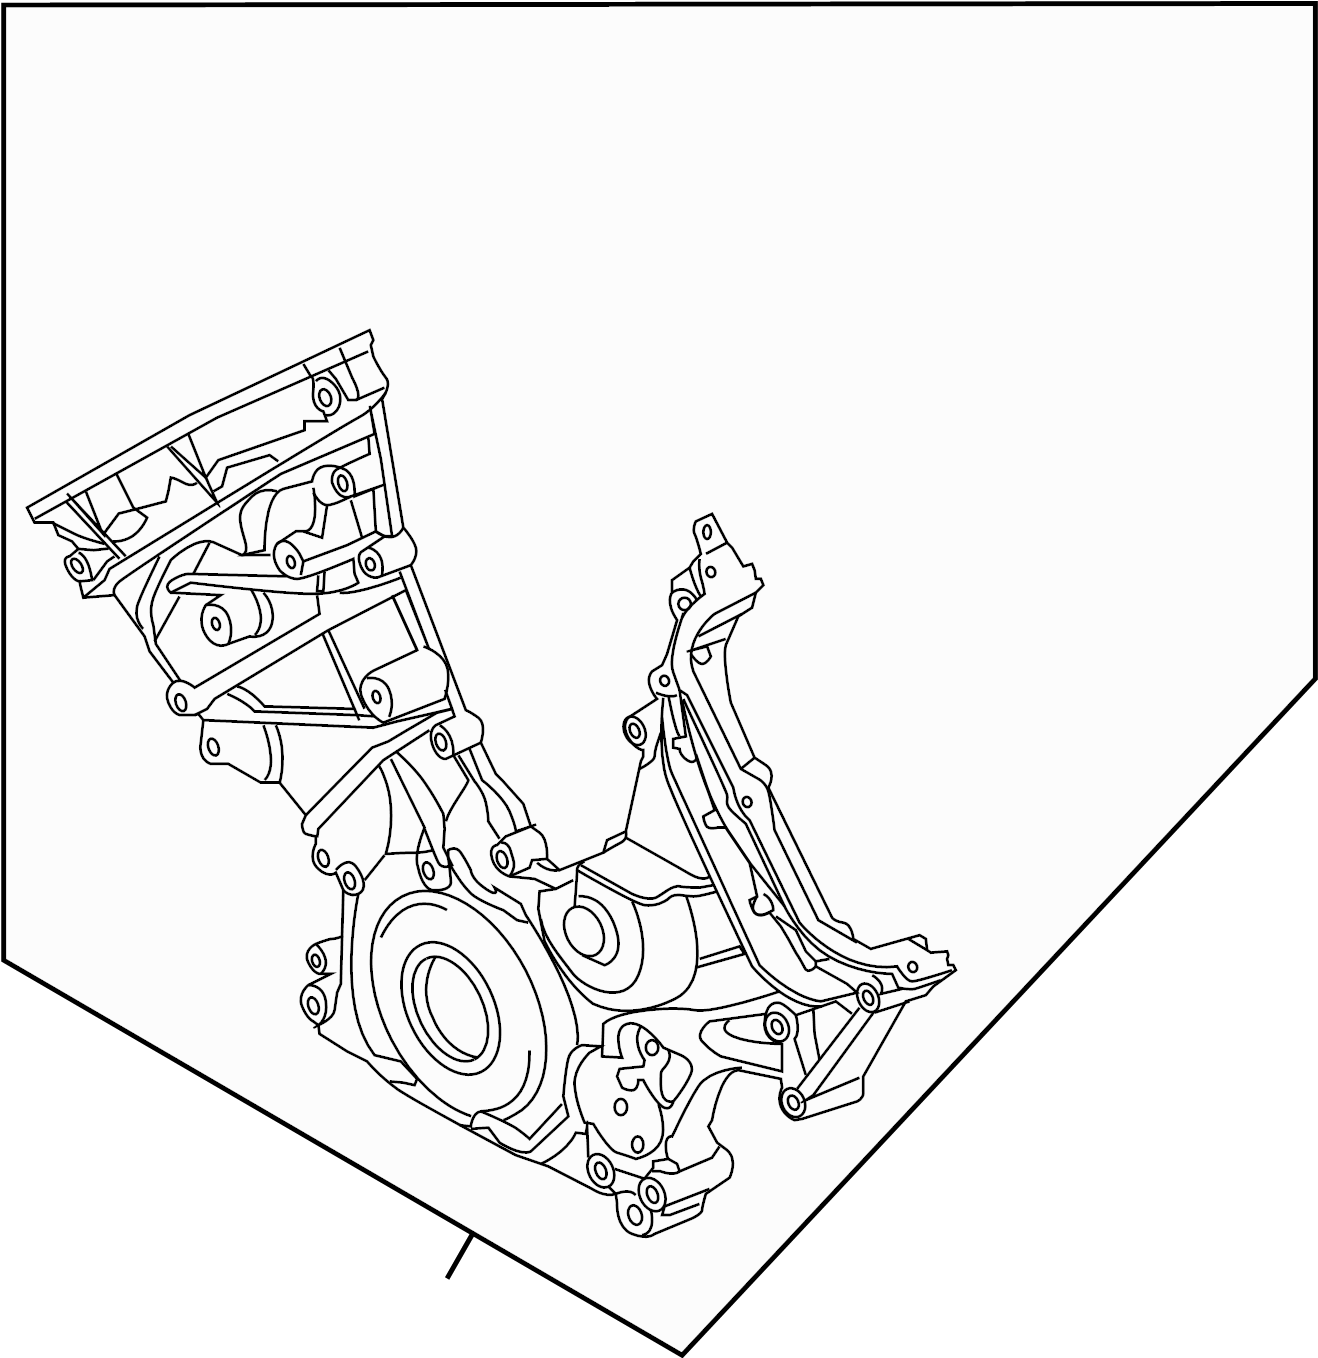 Ford F-150 Engine Timing Cover (Front). 5.0 LITER. 5.0